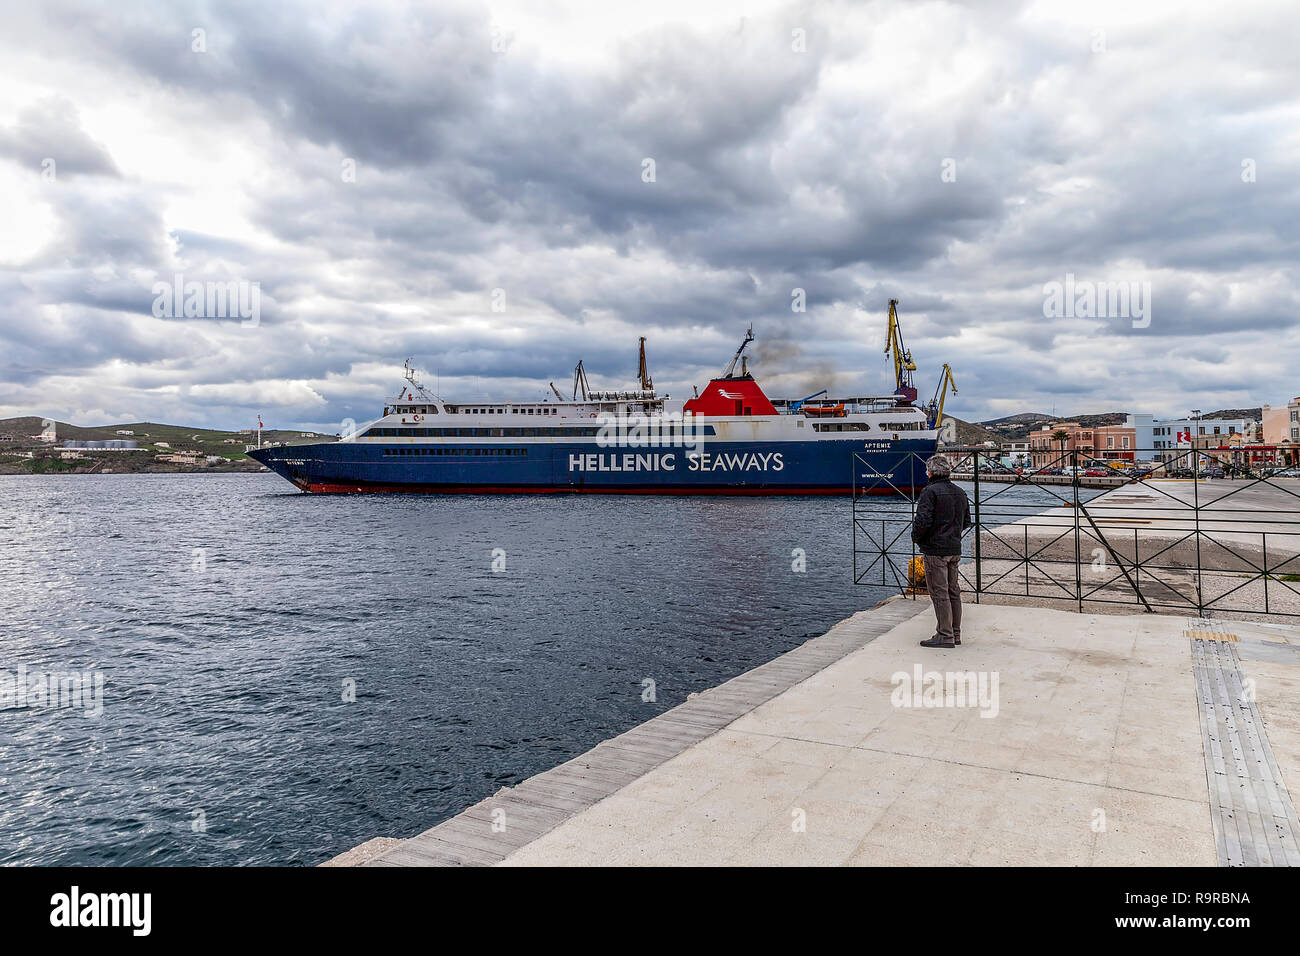 Ermoupolis: 27th December. Hellenic Seaways Ferry boat leaving Ermoupolis harbour. Man standing watching its deparchure. Ermoupolis, Syros, December 2 - Stock Image